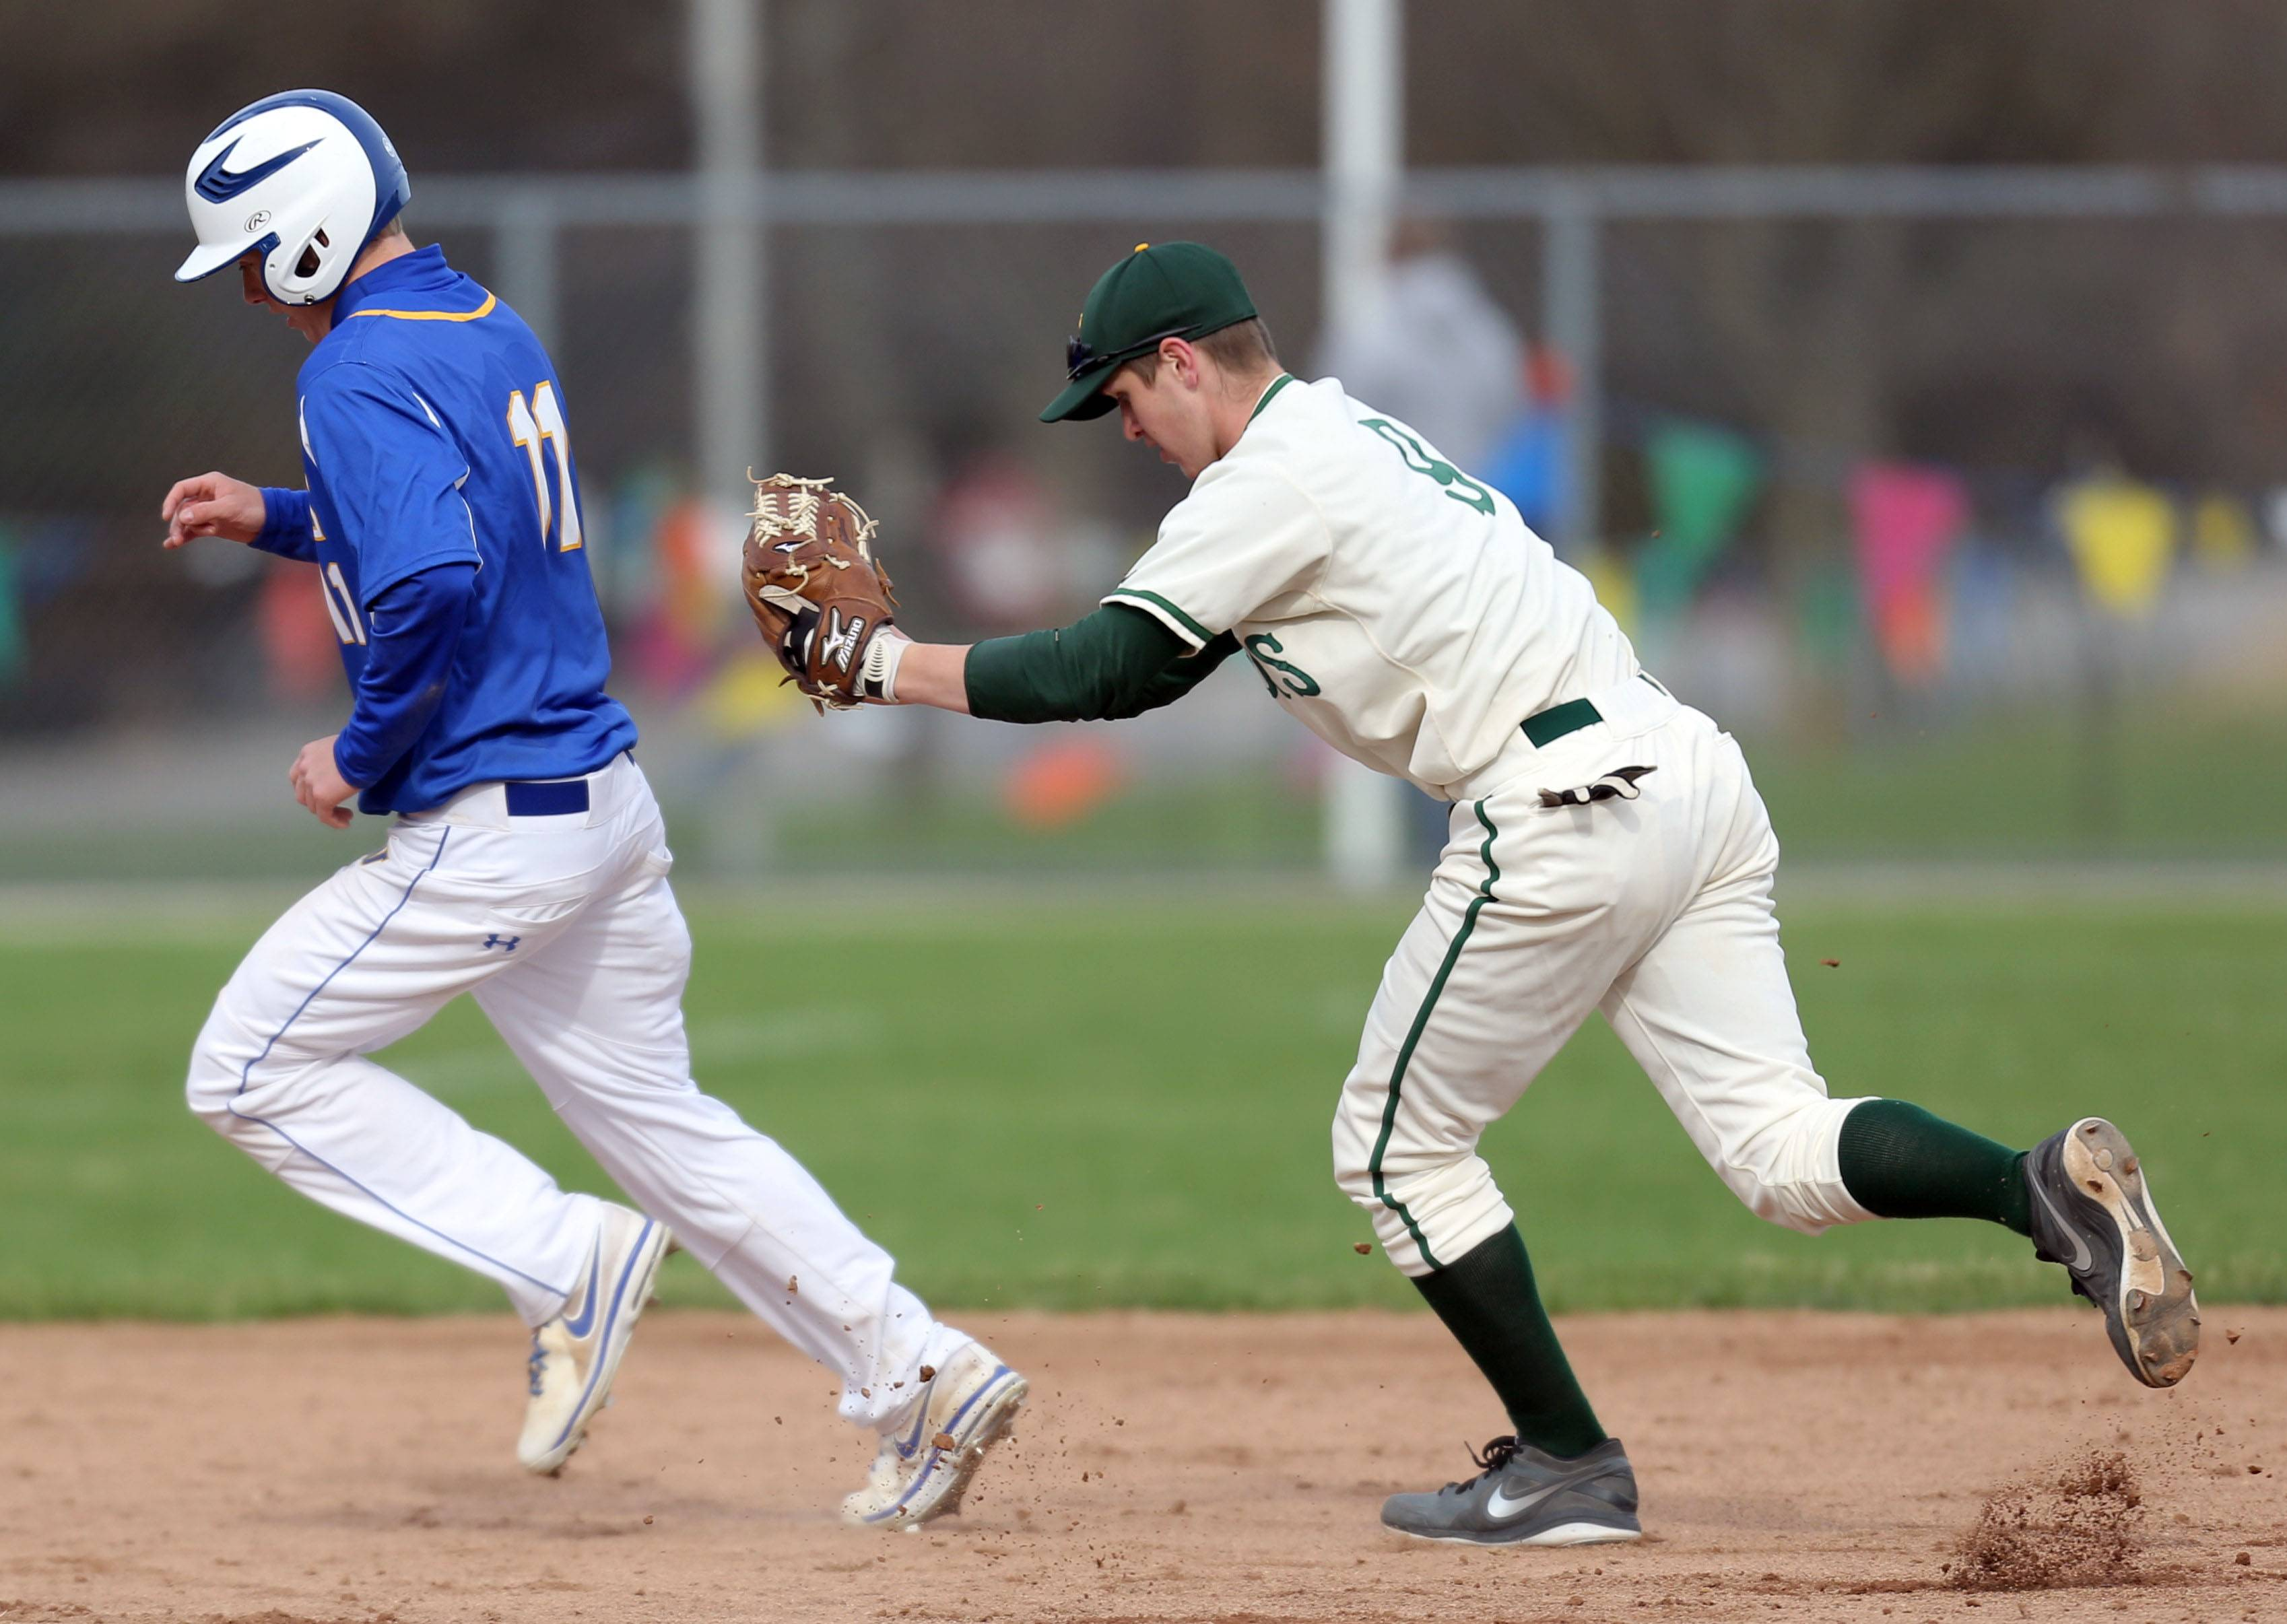 Warren's Chris Mathieu, left, is tagged out in a rundown by Stevenson's Sean Wilson on Wednesday at Stevenson.